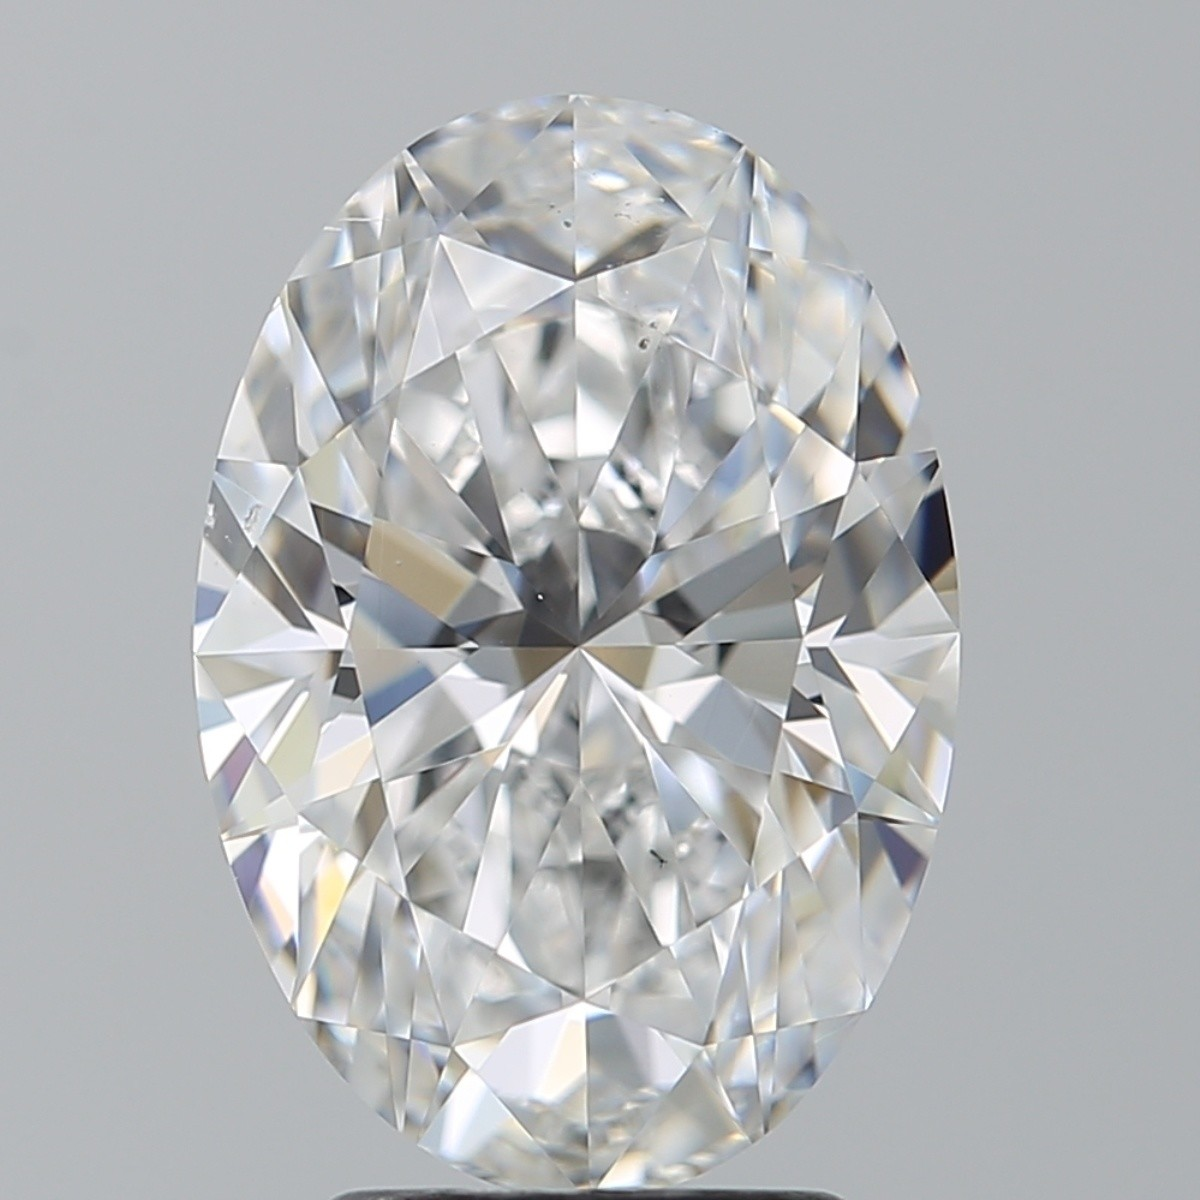 3.21 Carat Oval Diamond (D/VS2)